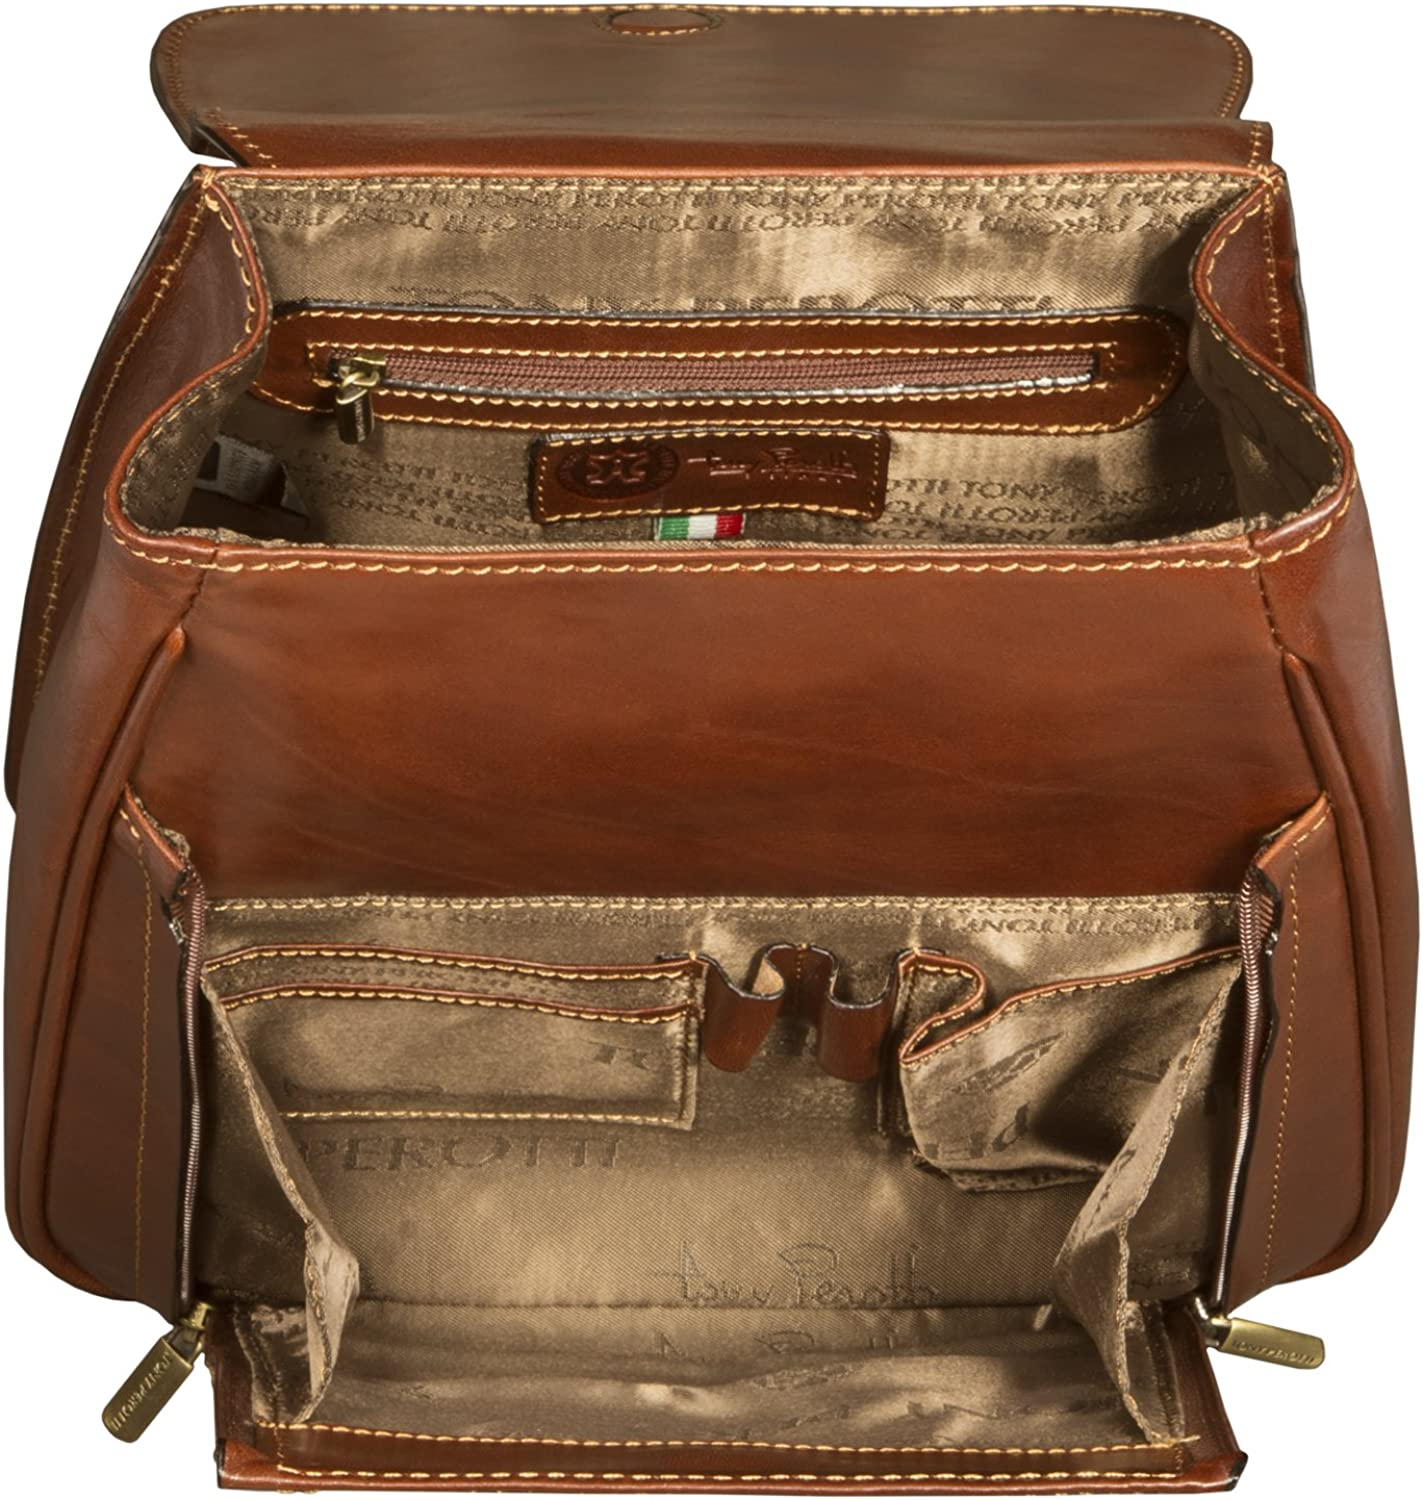 Tony Perotti Italian Leather Flap-over Compact Backpack